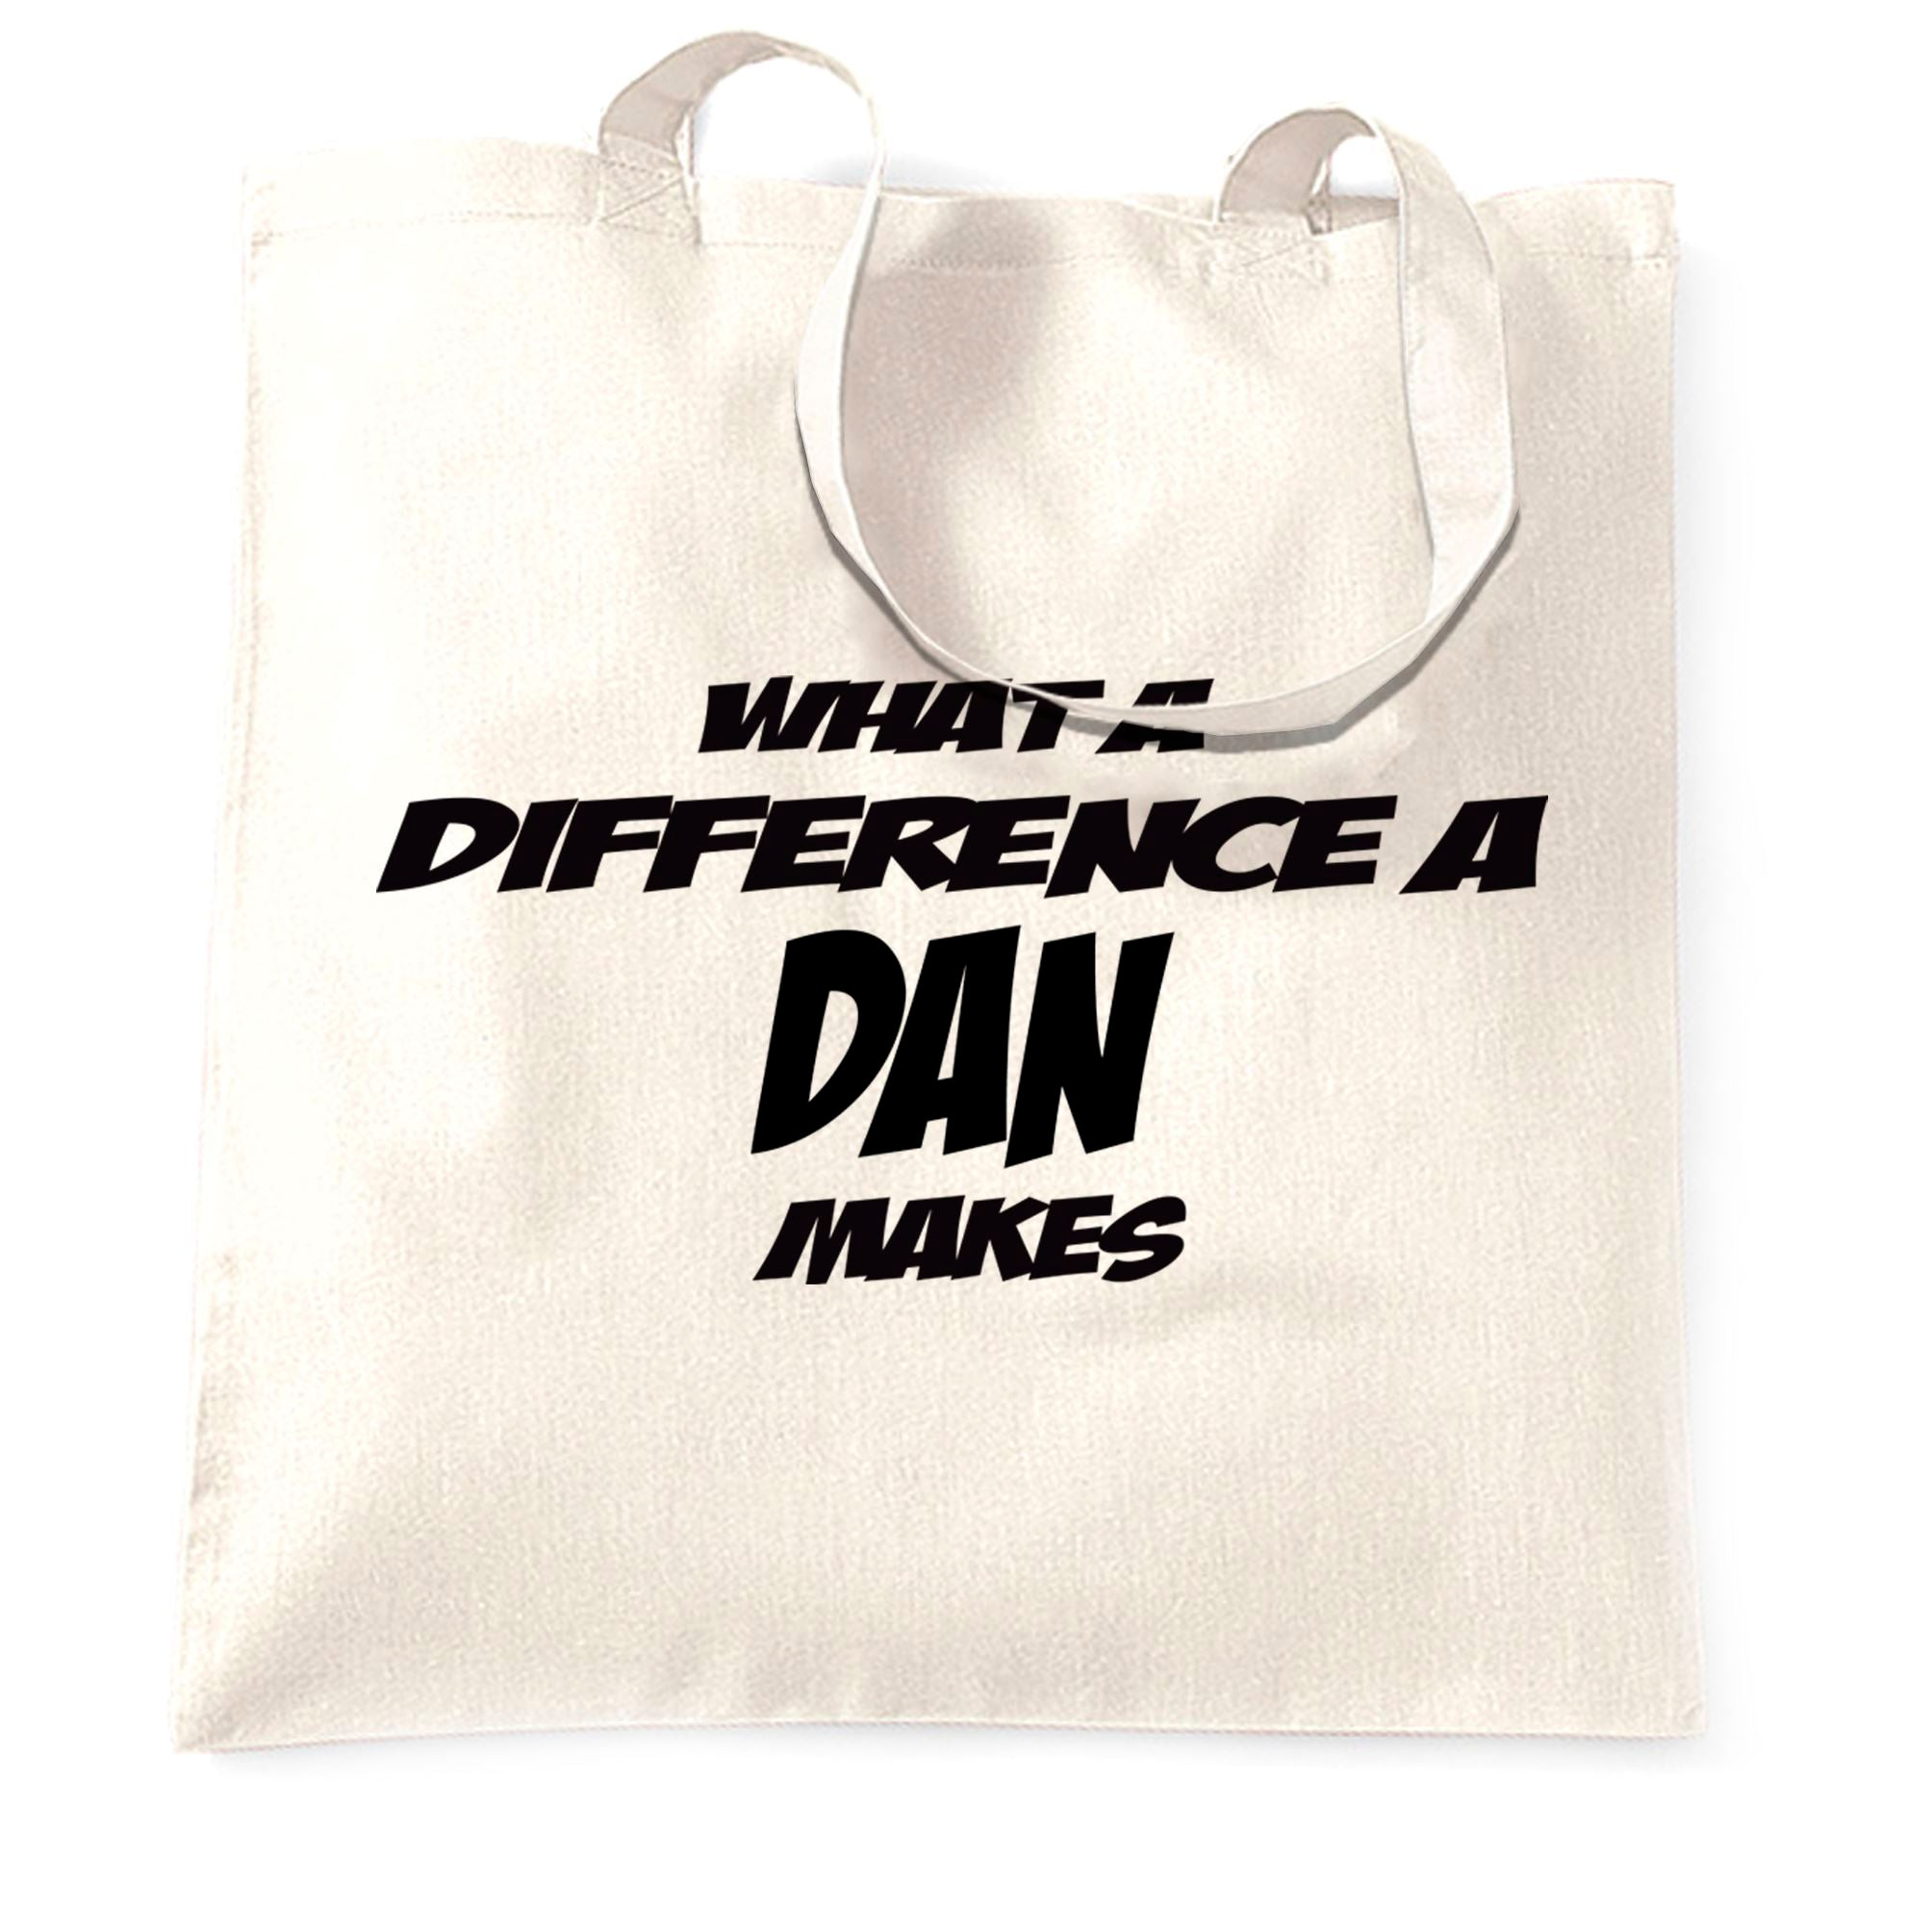 Novelty Tote Bag What A Difference A Dan Makes